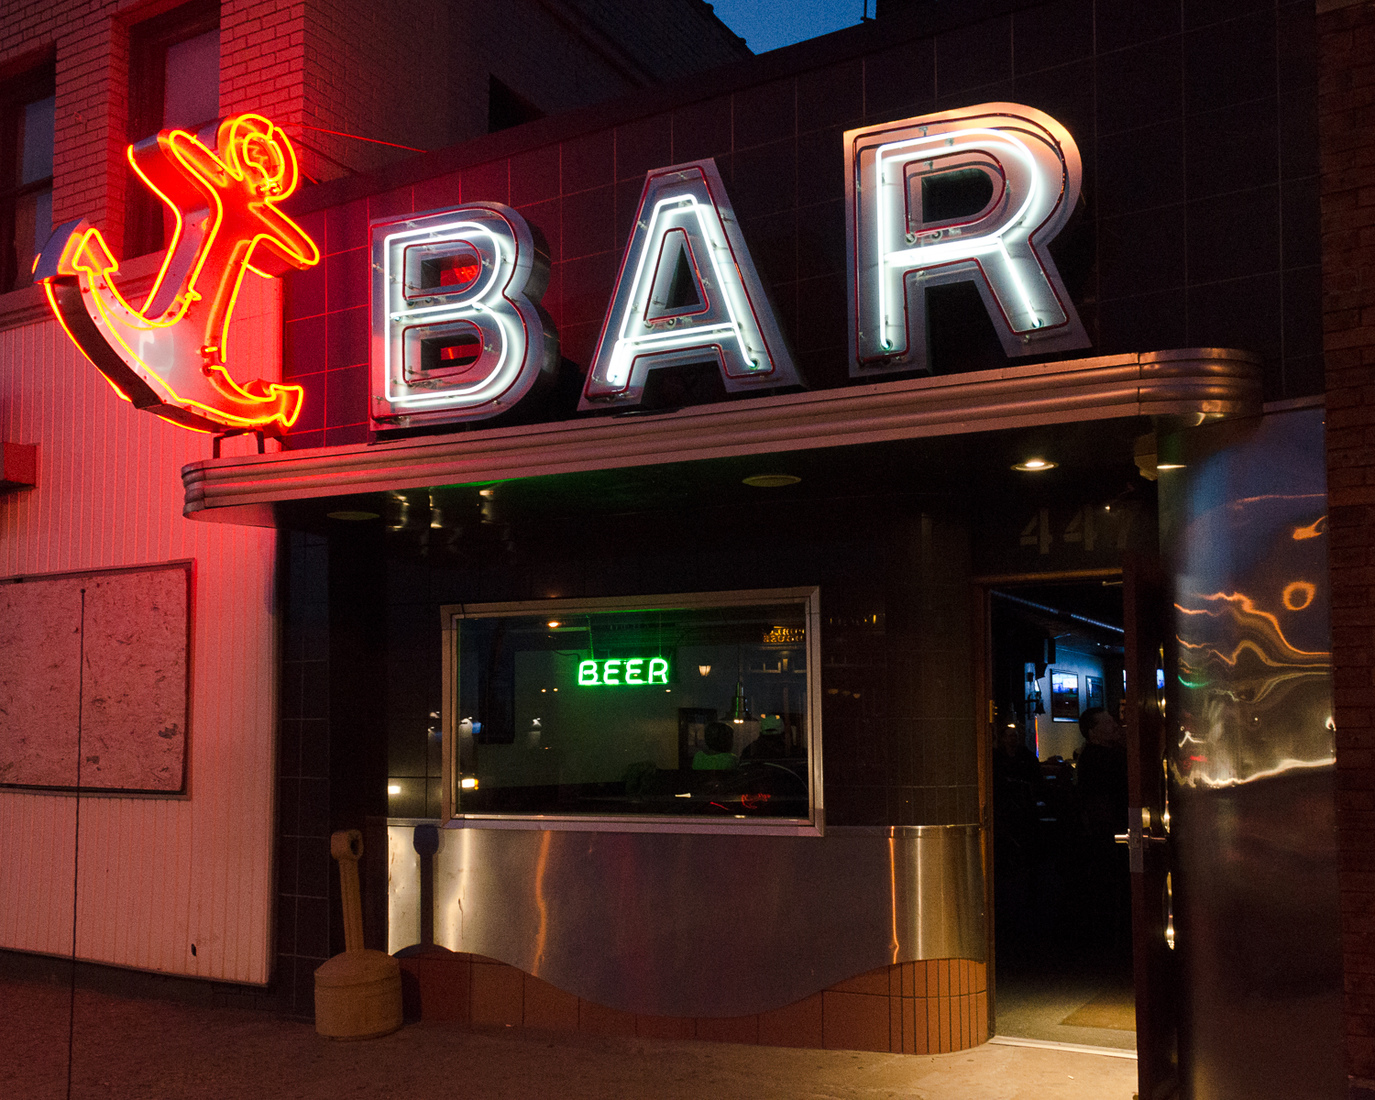 Neon Anchor Bar No. 1 - Grand Rapids, Michigan